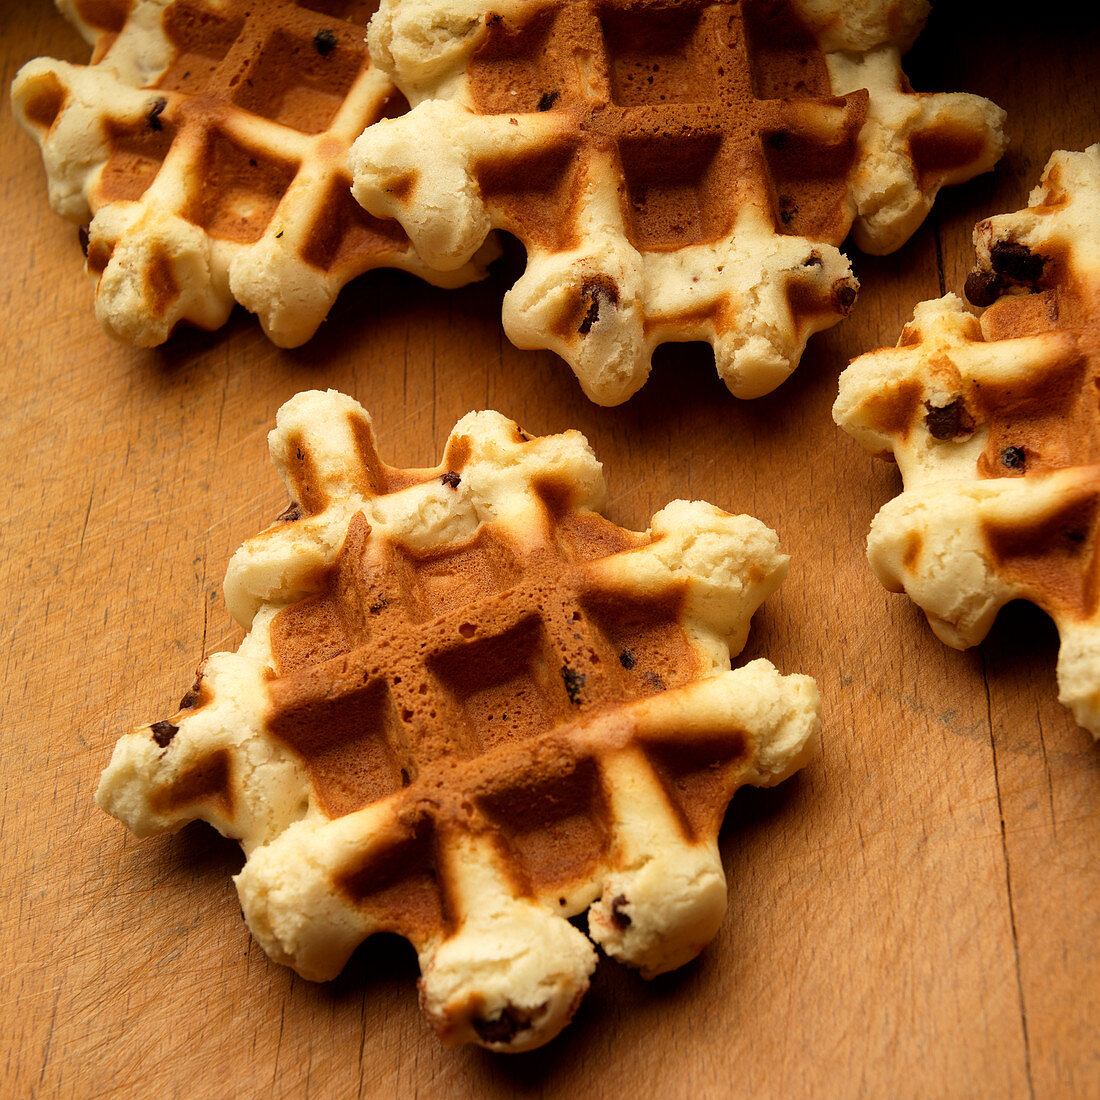 Home made Belgian waffles with chocolate chips